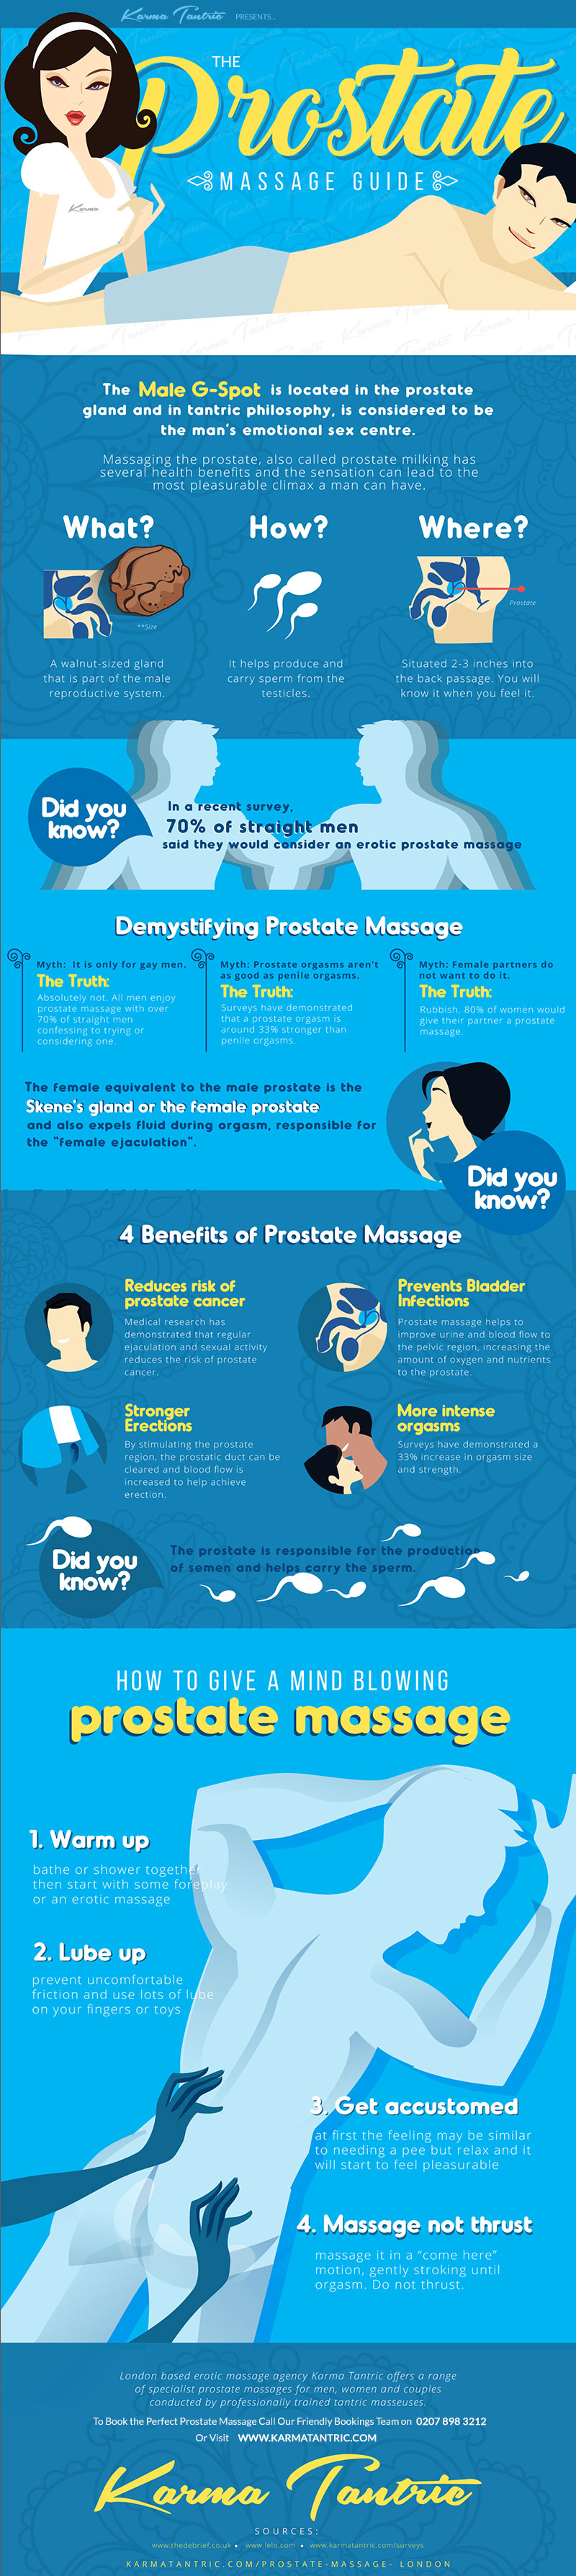 A Guide To The Ultimate Prostate Massage - Infographic